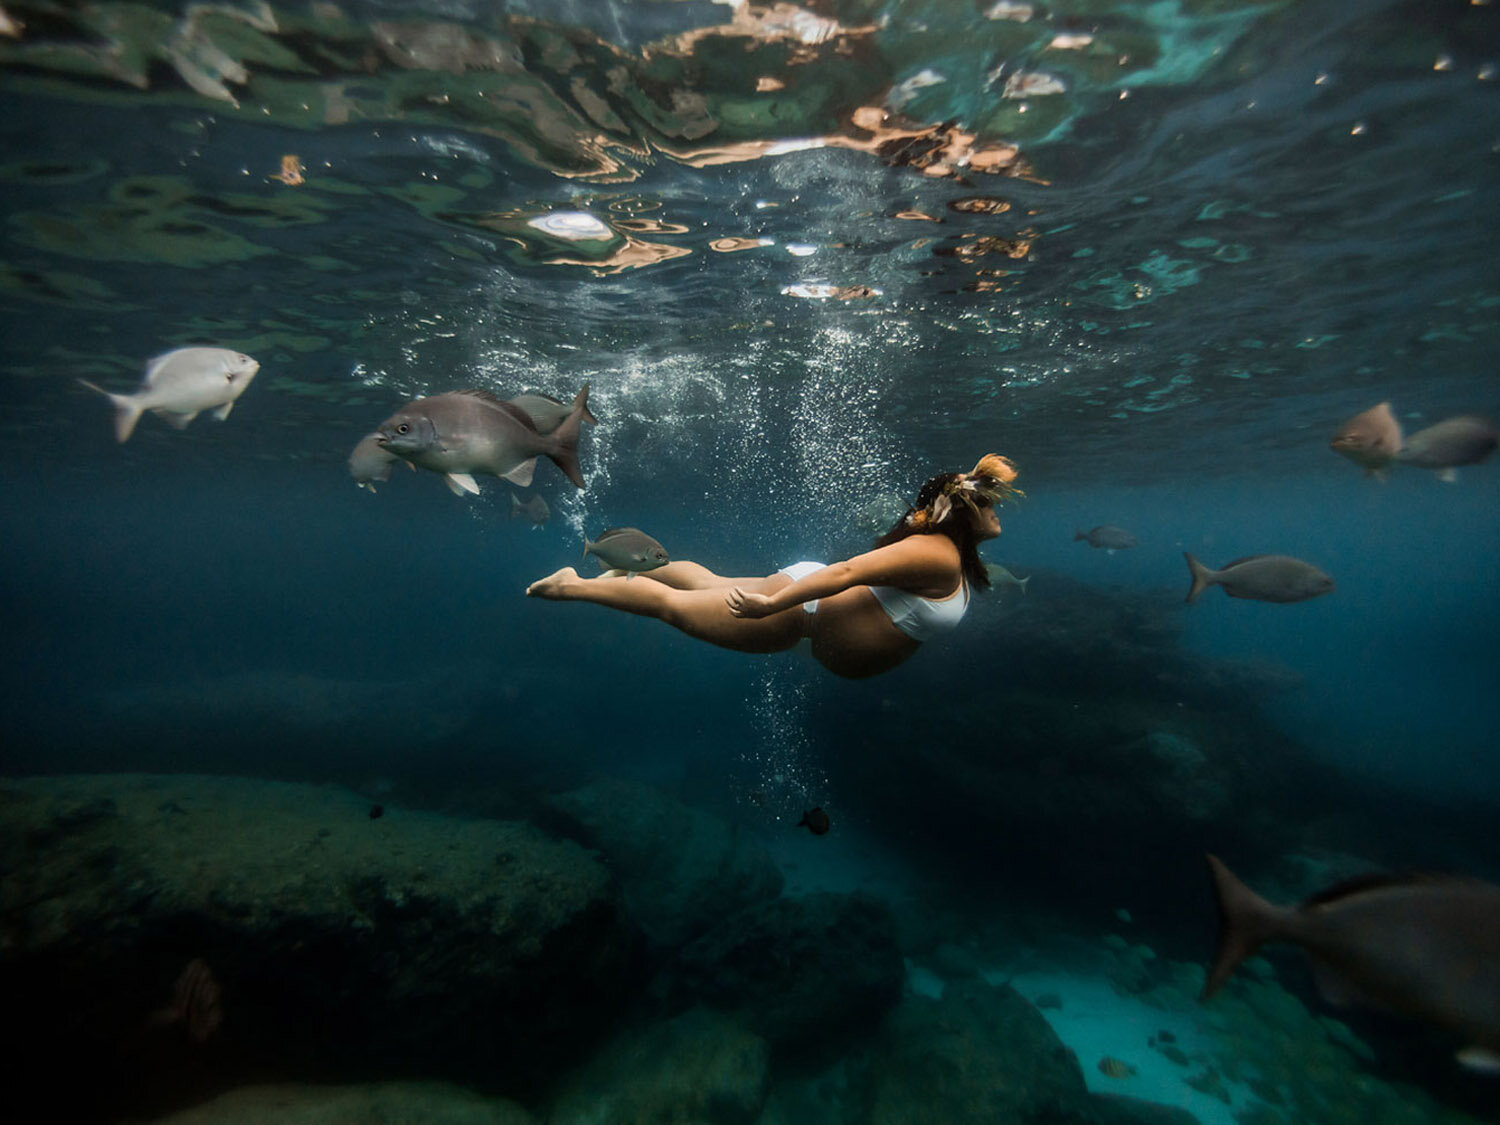 mermaiding together - MATERNITY SESSION